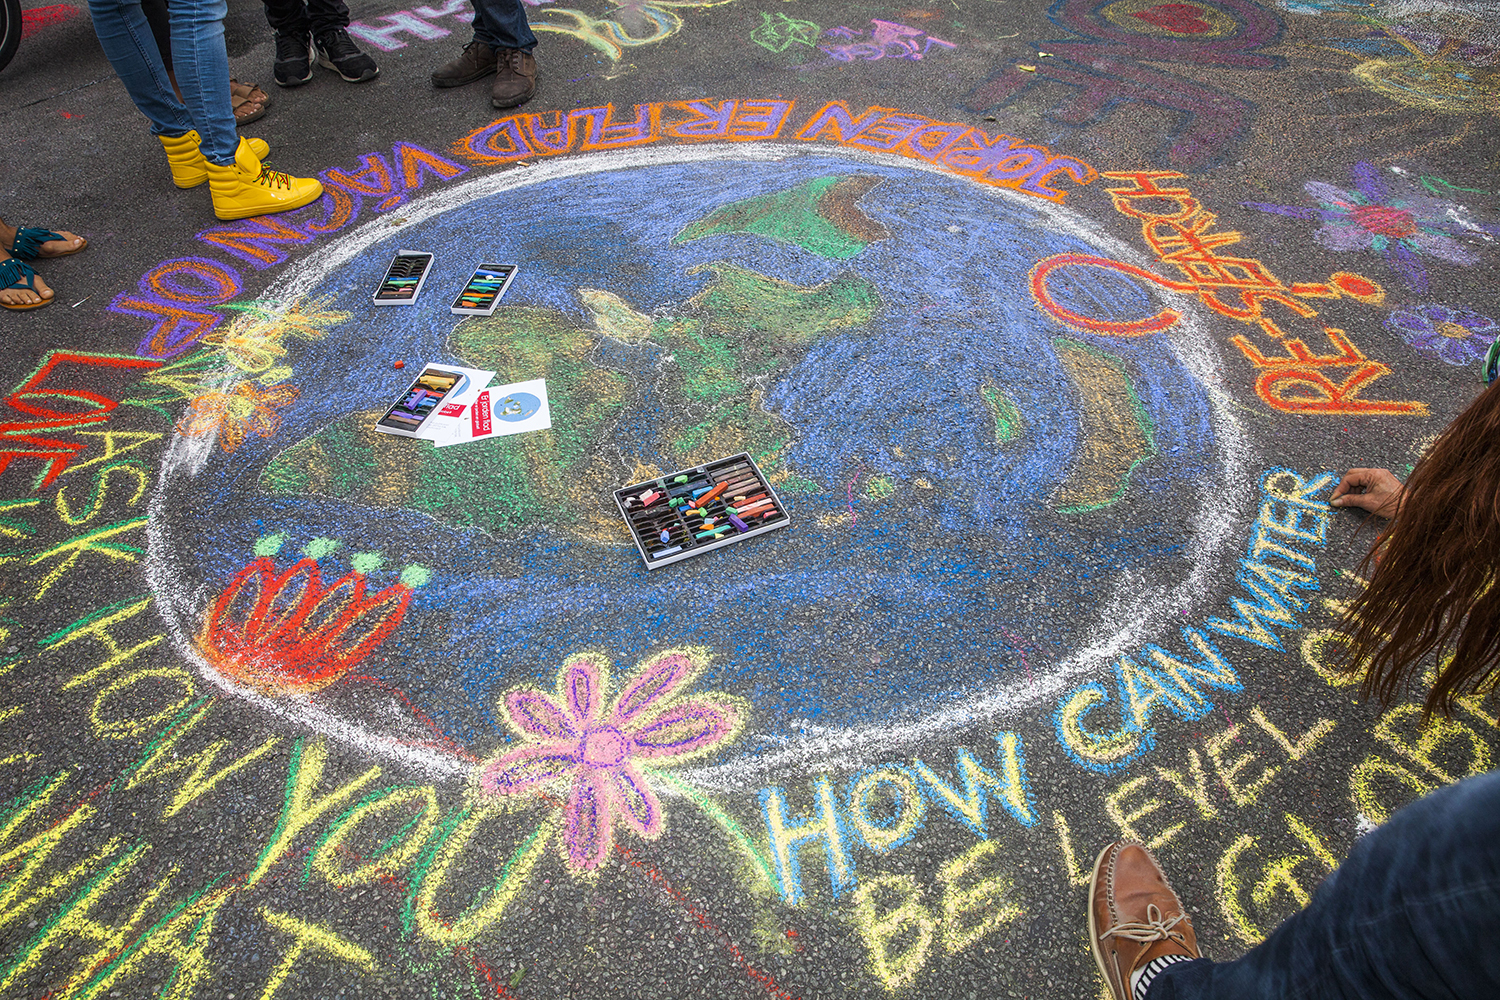 chalk_painting_day_18-09-16_helenalundquist_16